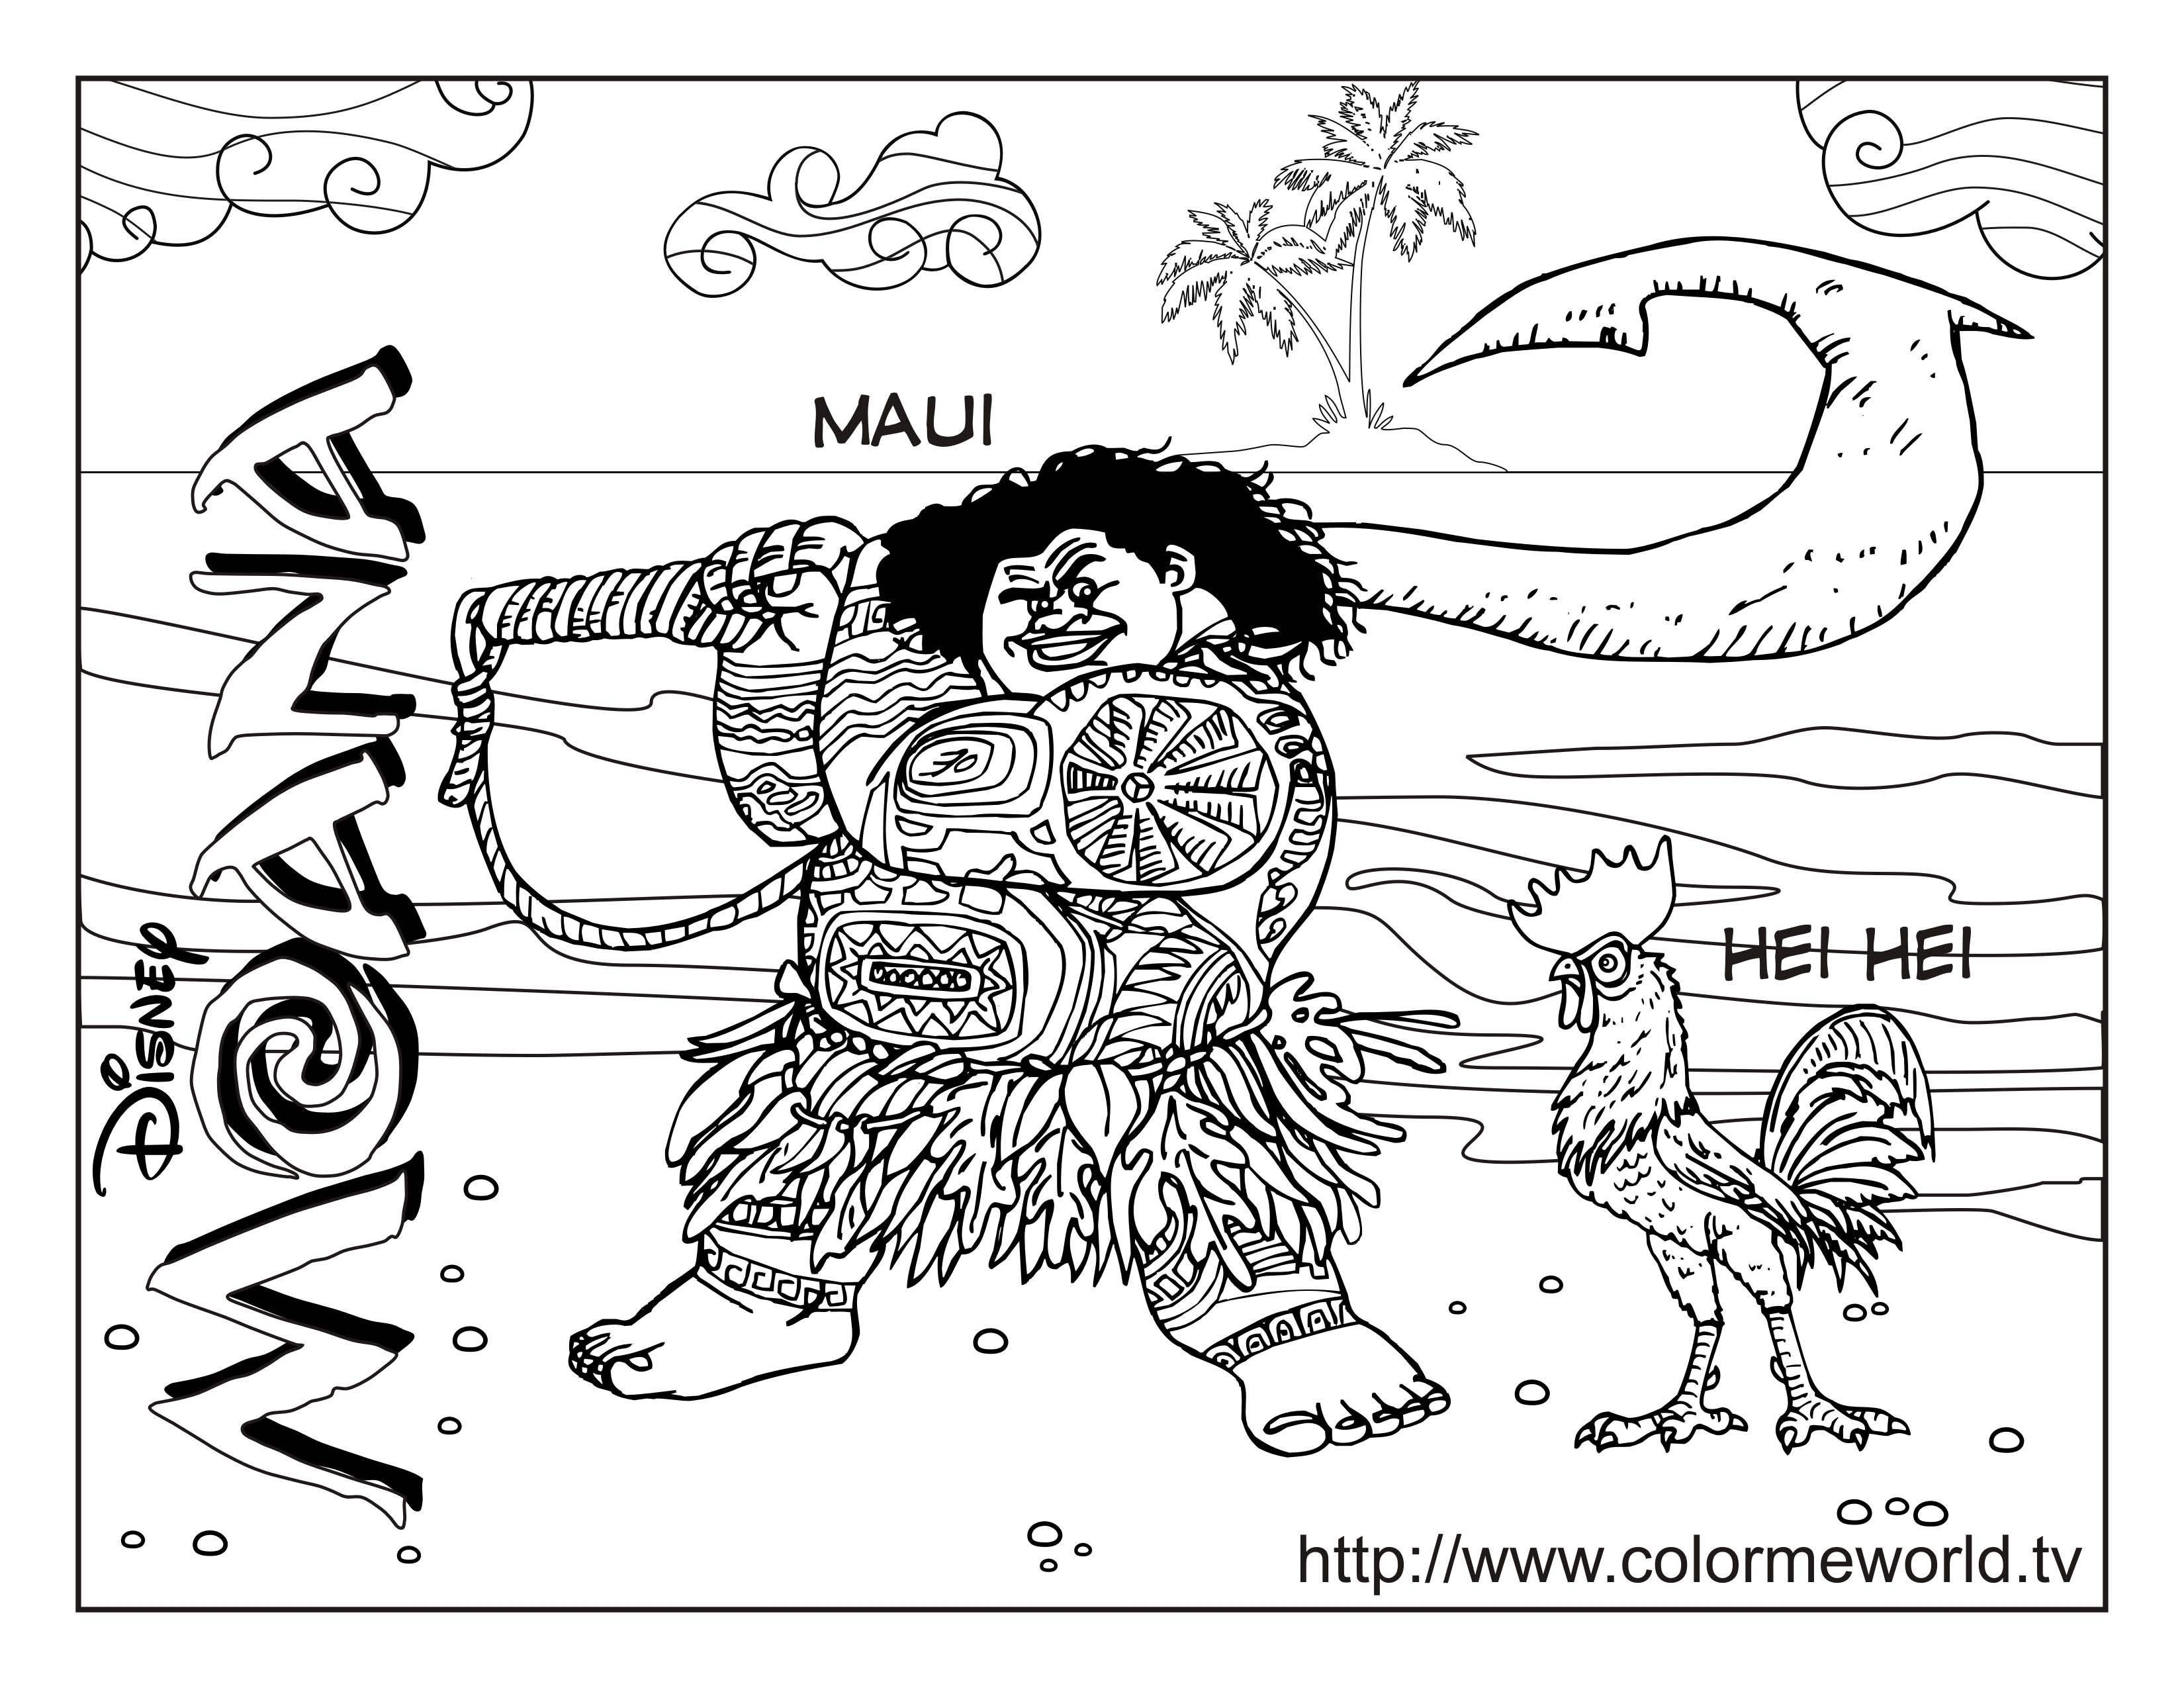 moana maui coloring image 2 besides moana coloring pages 19 besides ncXnp8Bpi besides hamap besides princess moana 1 as well moana coloring pages 16 additionally Baby Moana besides RTdRR5LEc also moana kakamora coloring page sll moreover e80058672f80077479b6de2b1e303e90 together with Toddler Moana Coloring Page. on hawaiian coloring pages moana